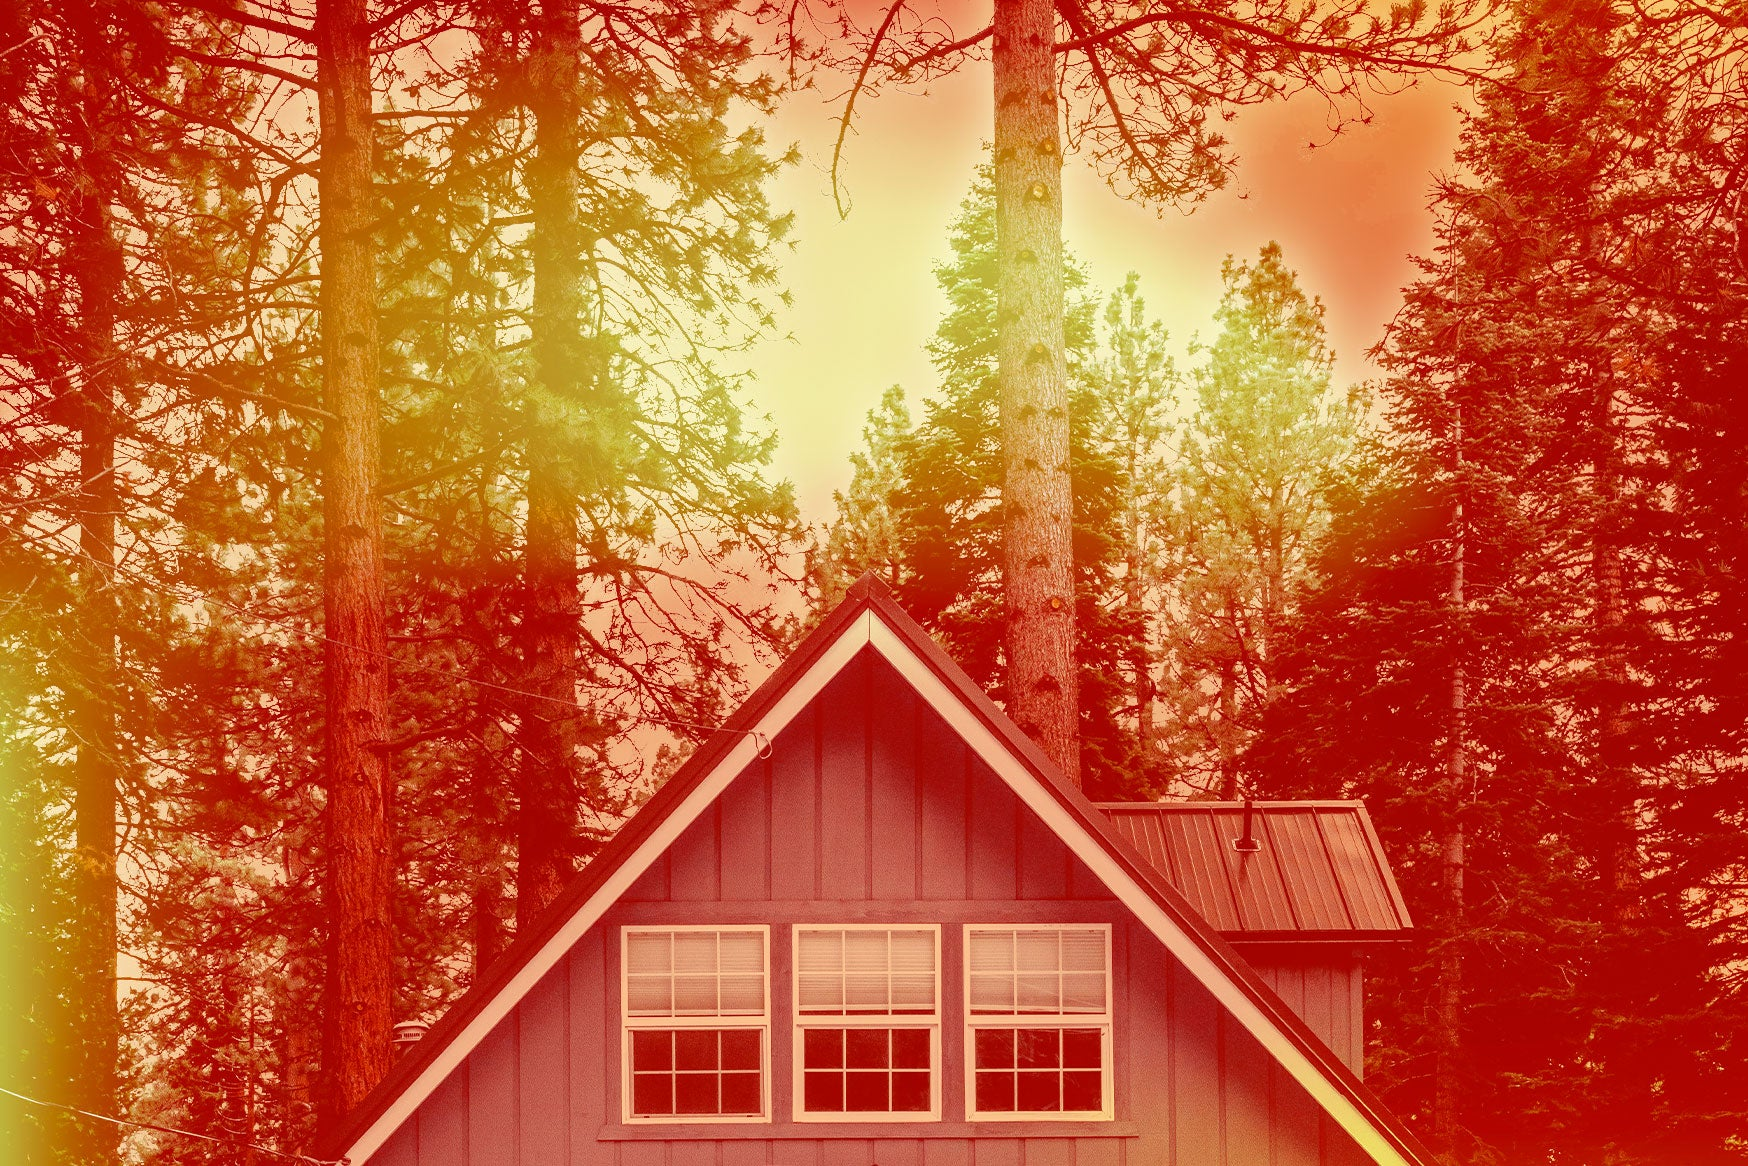 Roof of a house surrounded by trees with a red and orange color overlay.